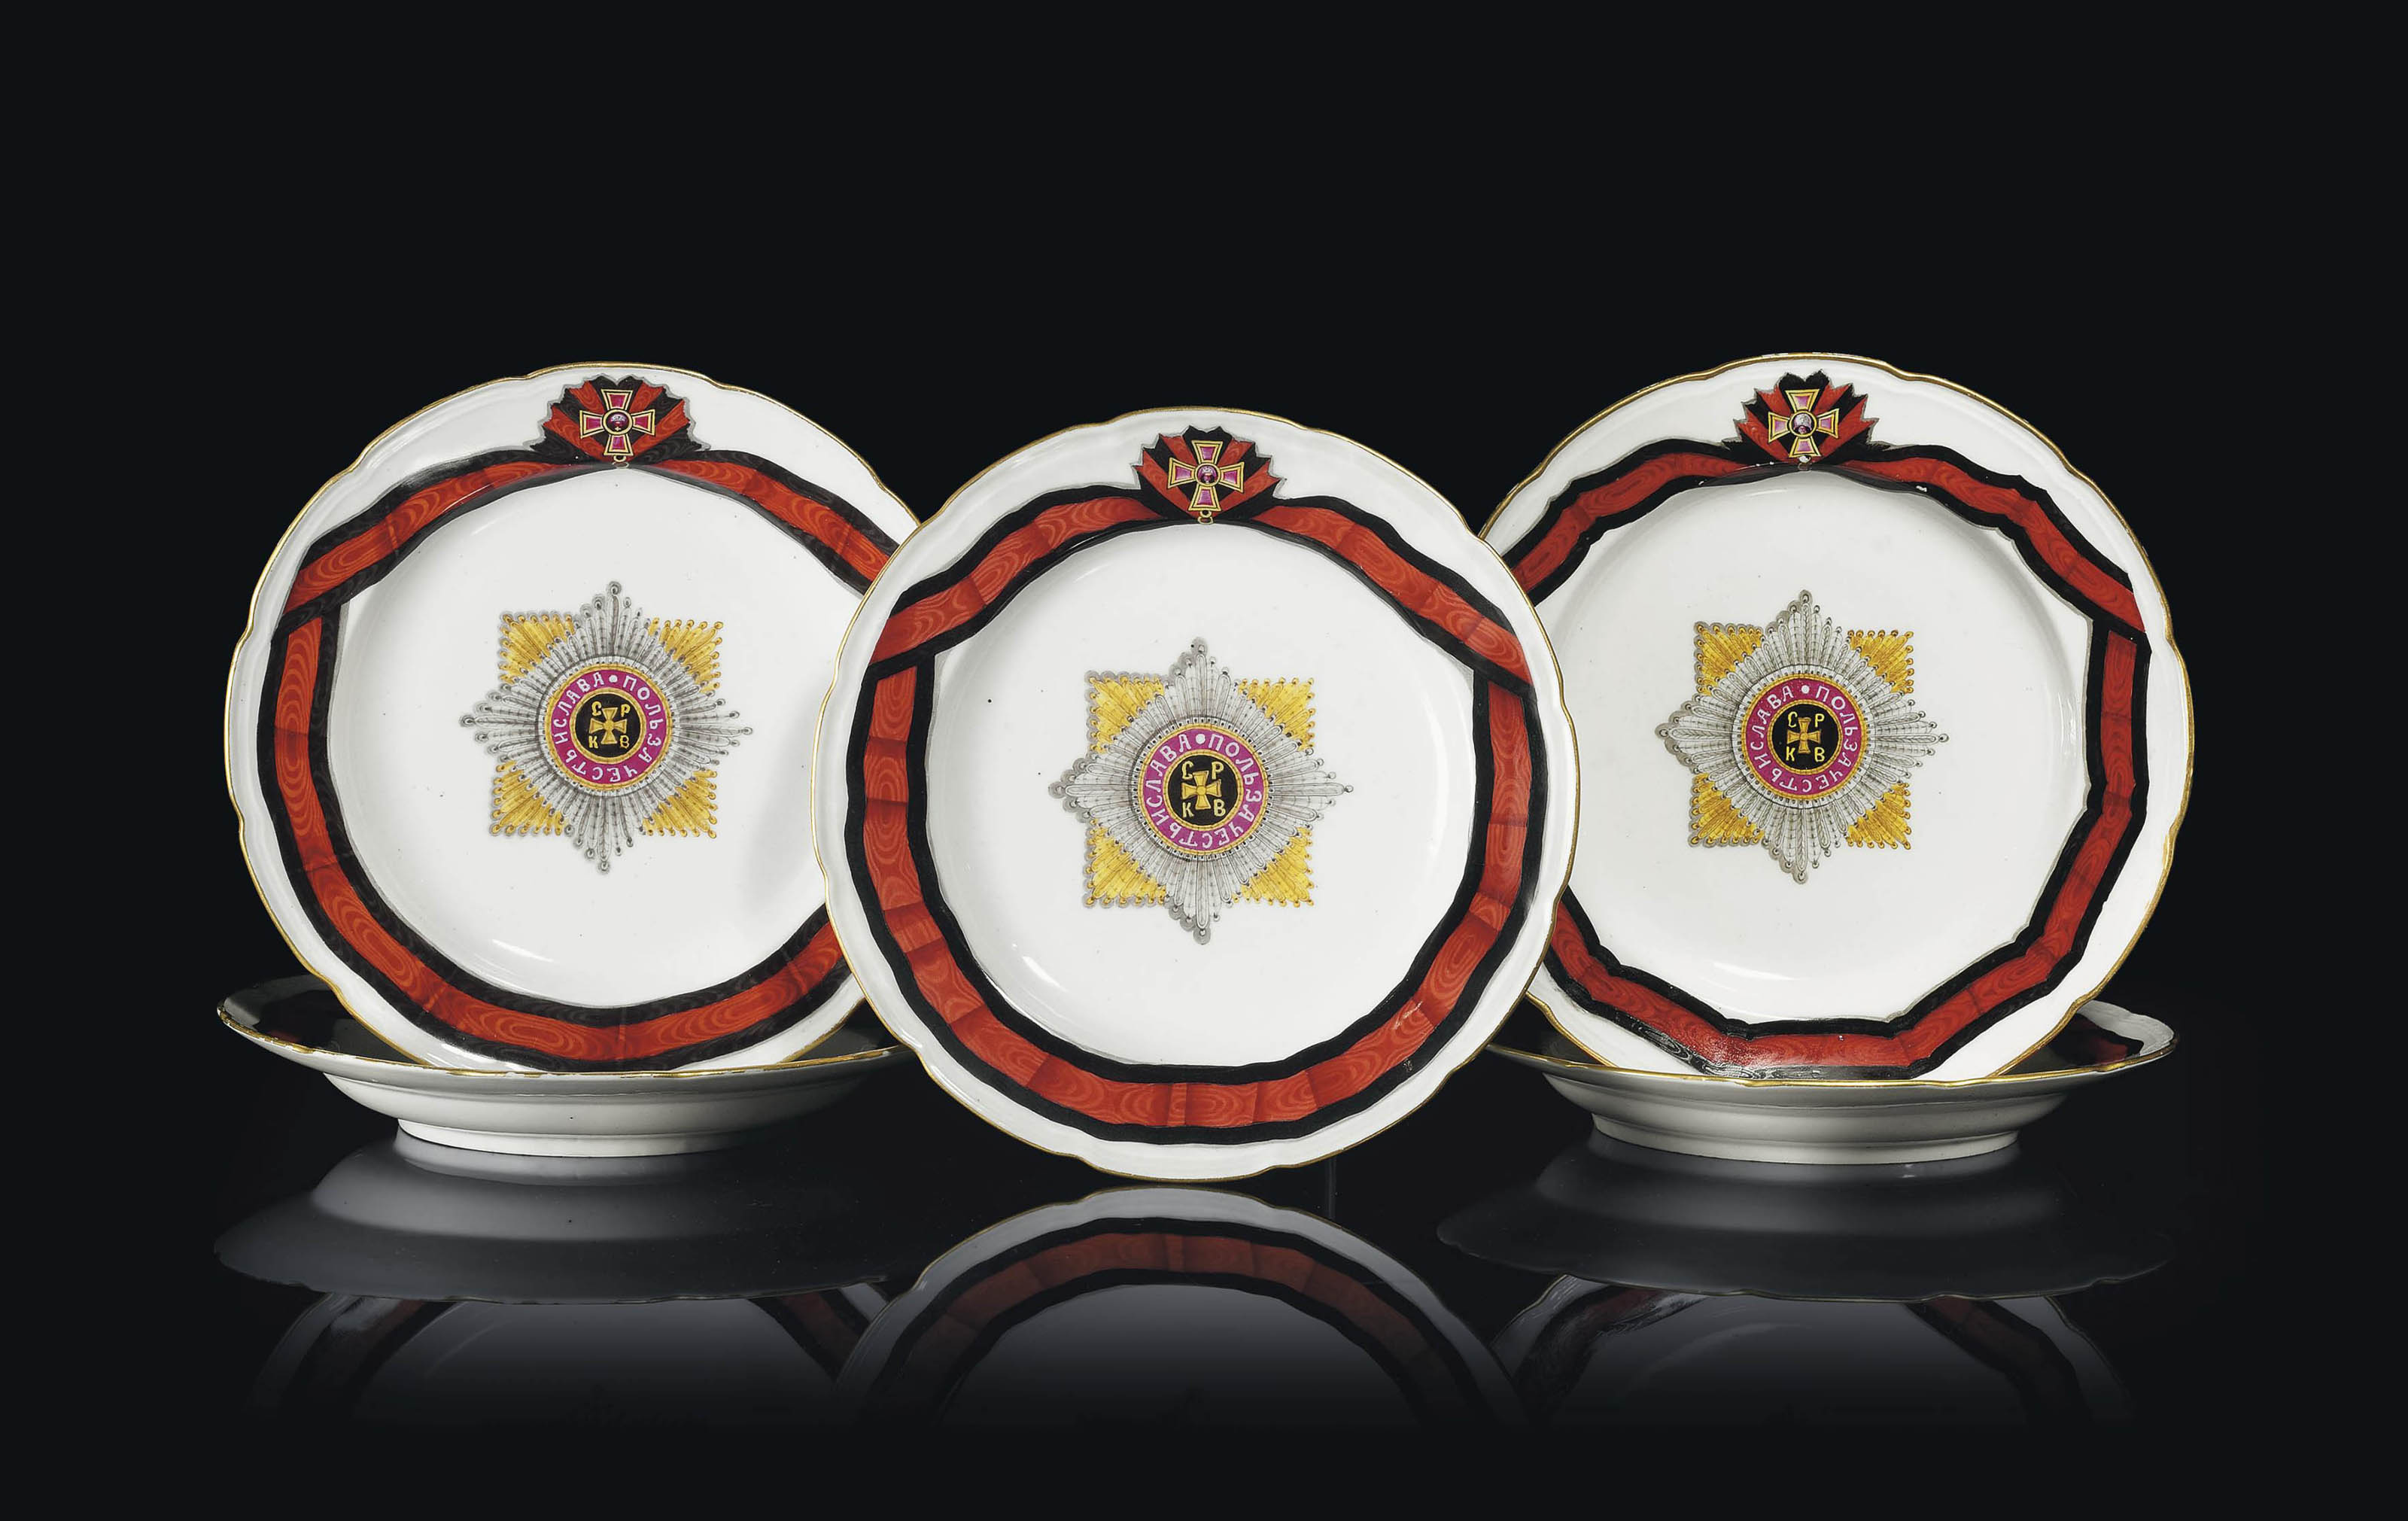 FIVE PORCELAIN PLATES FROM THE SERVICE OF THE ORDER OF ST VLADIMIR